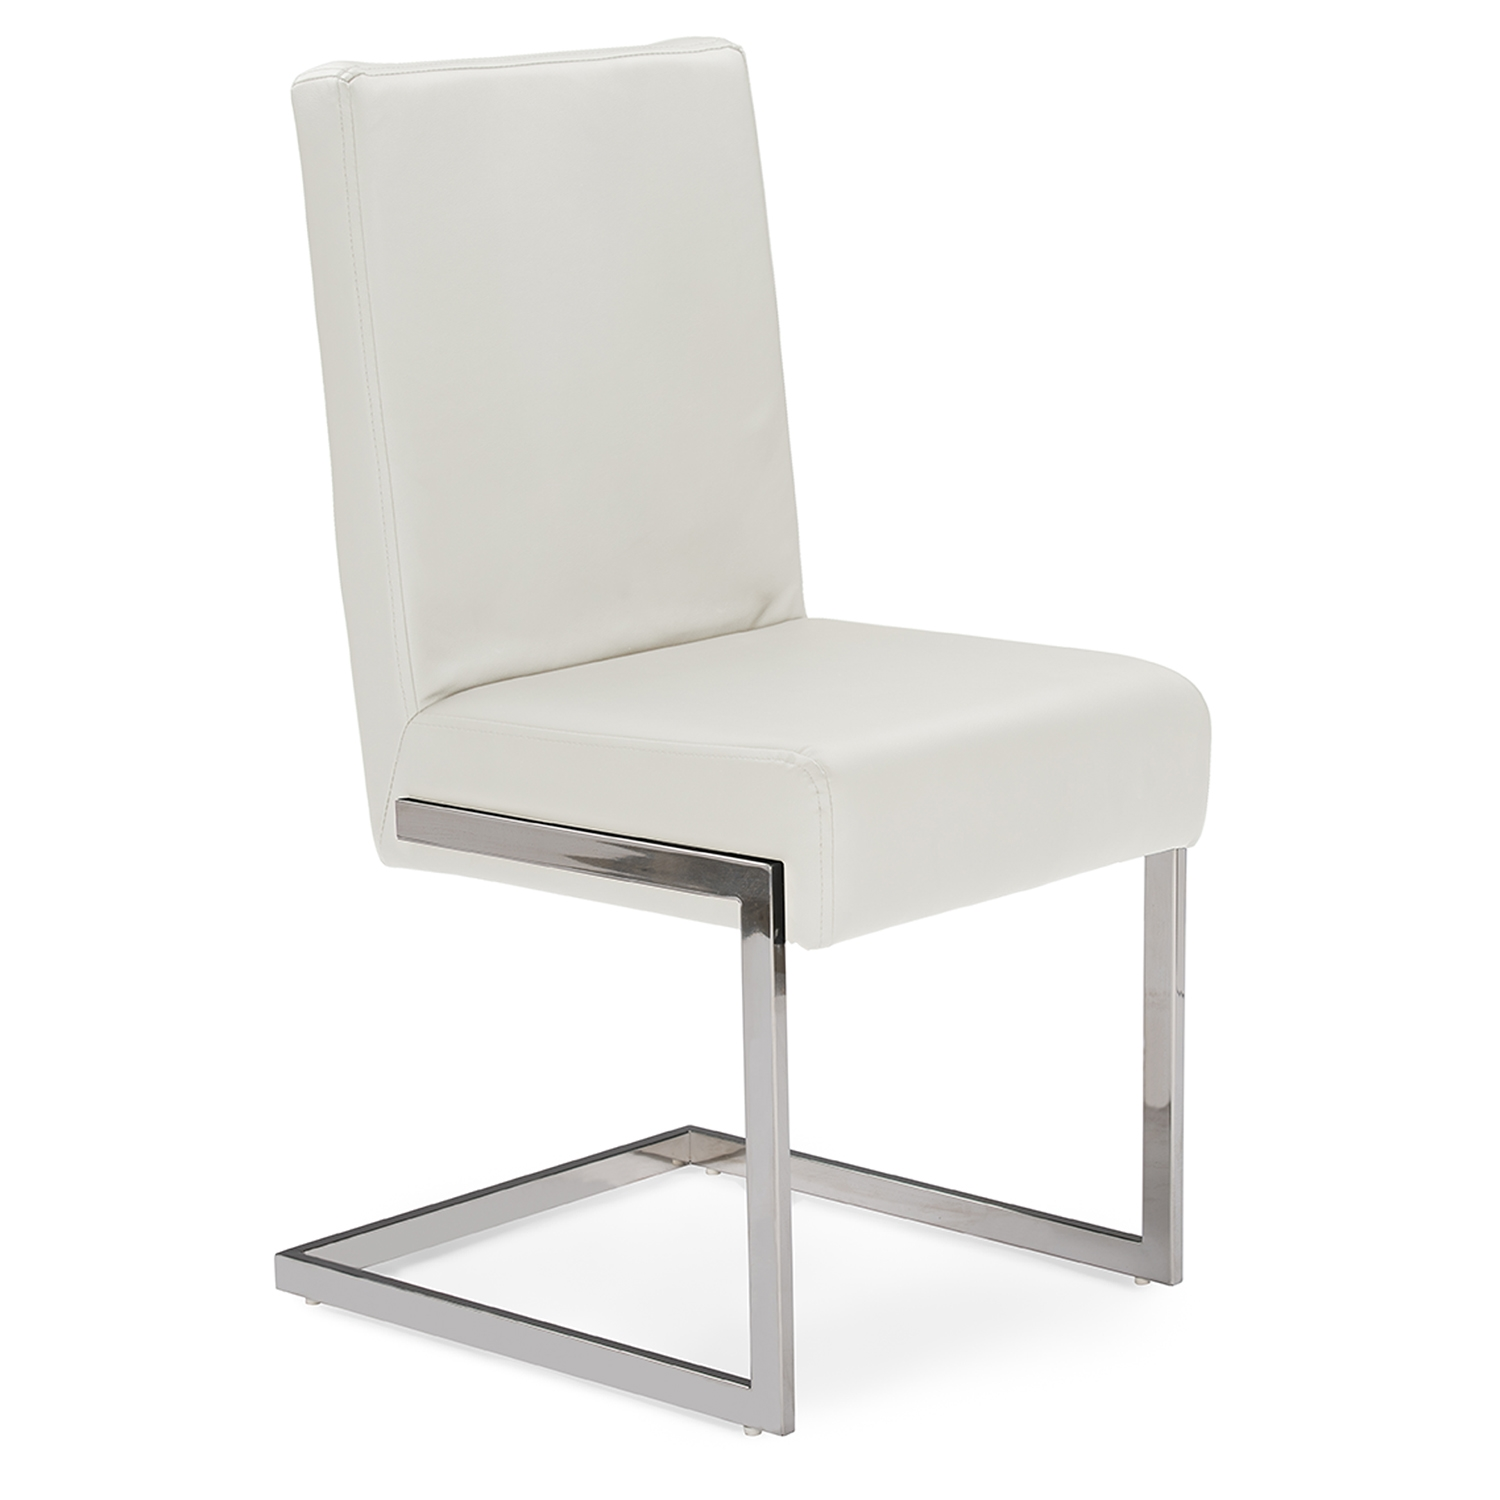 Baxton Studio Toulan Modern And Contemporary White Faux Leather Upholstered  Stainless Steel Dining Chair (Set Of 2)